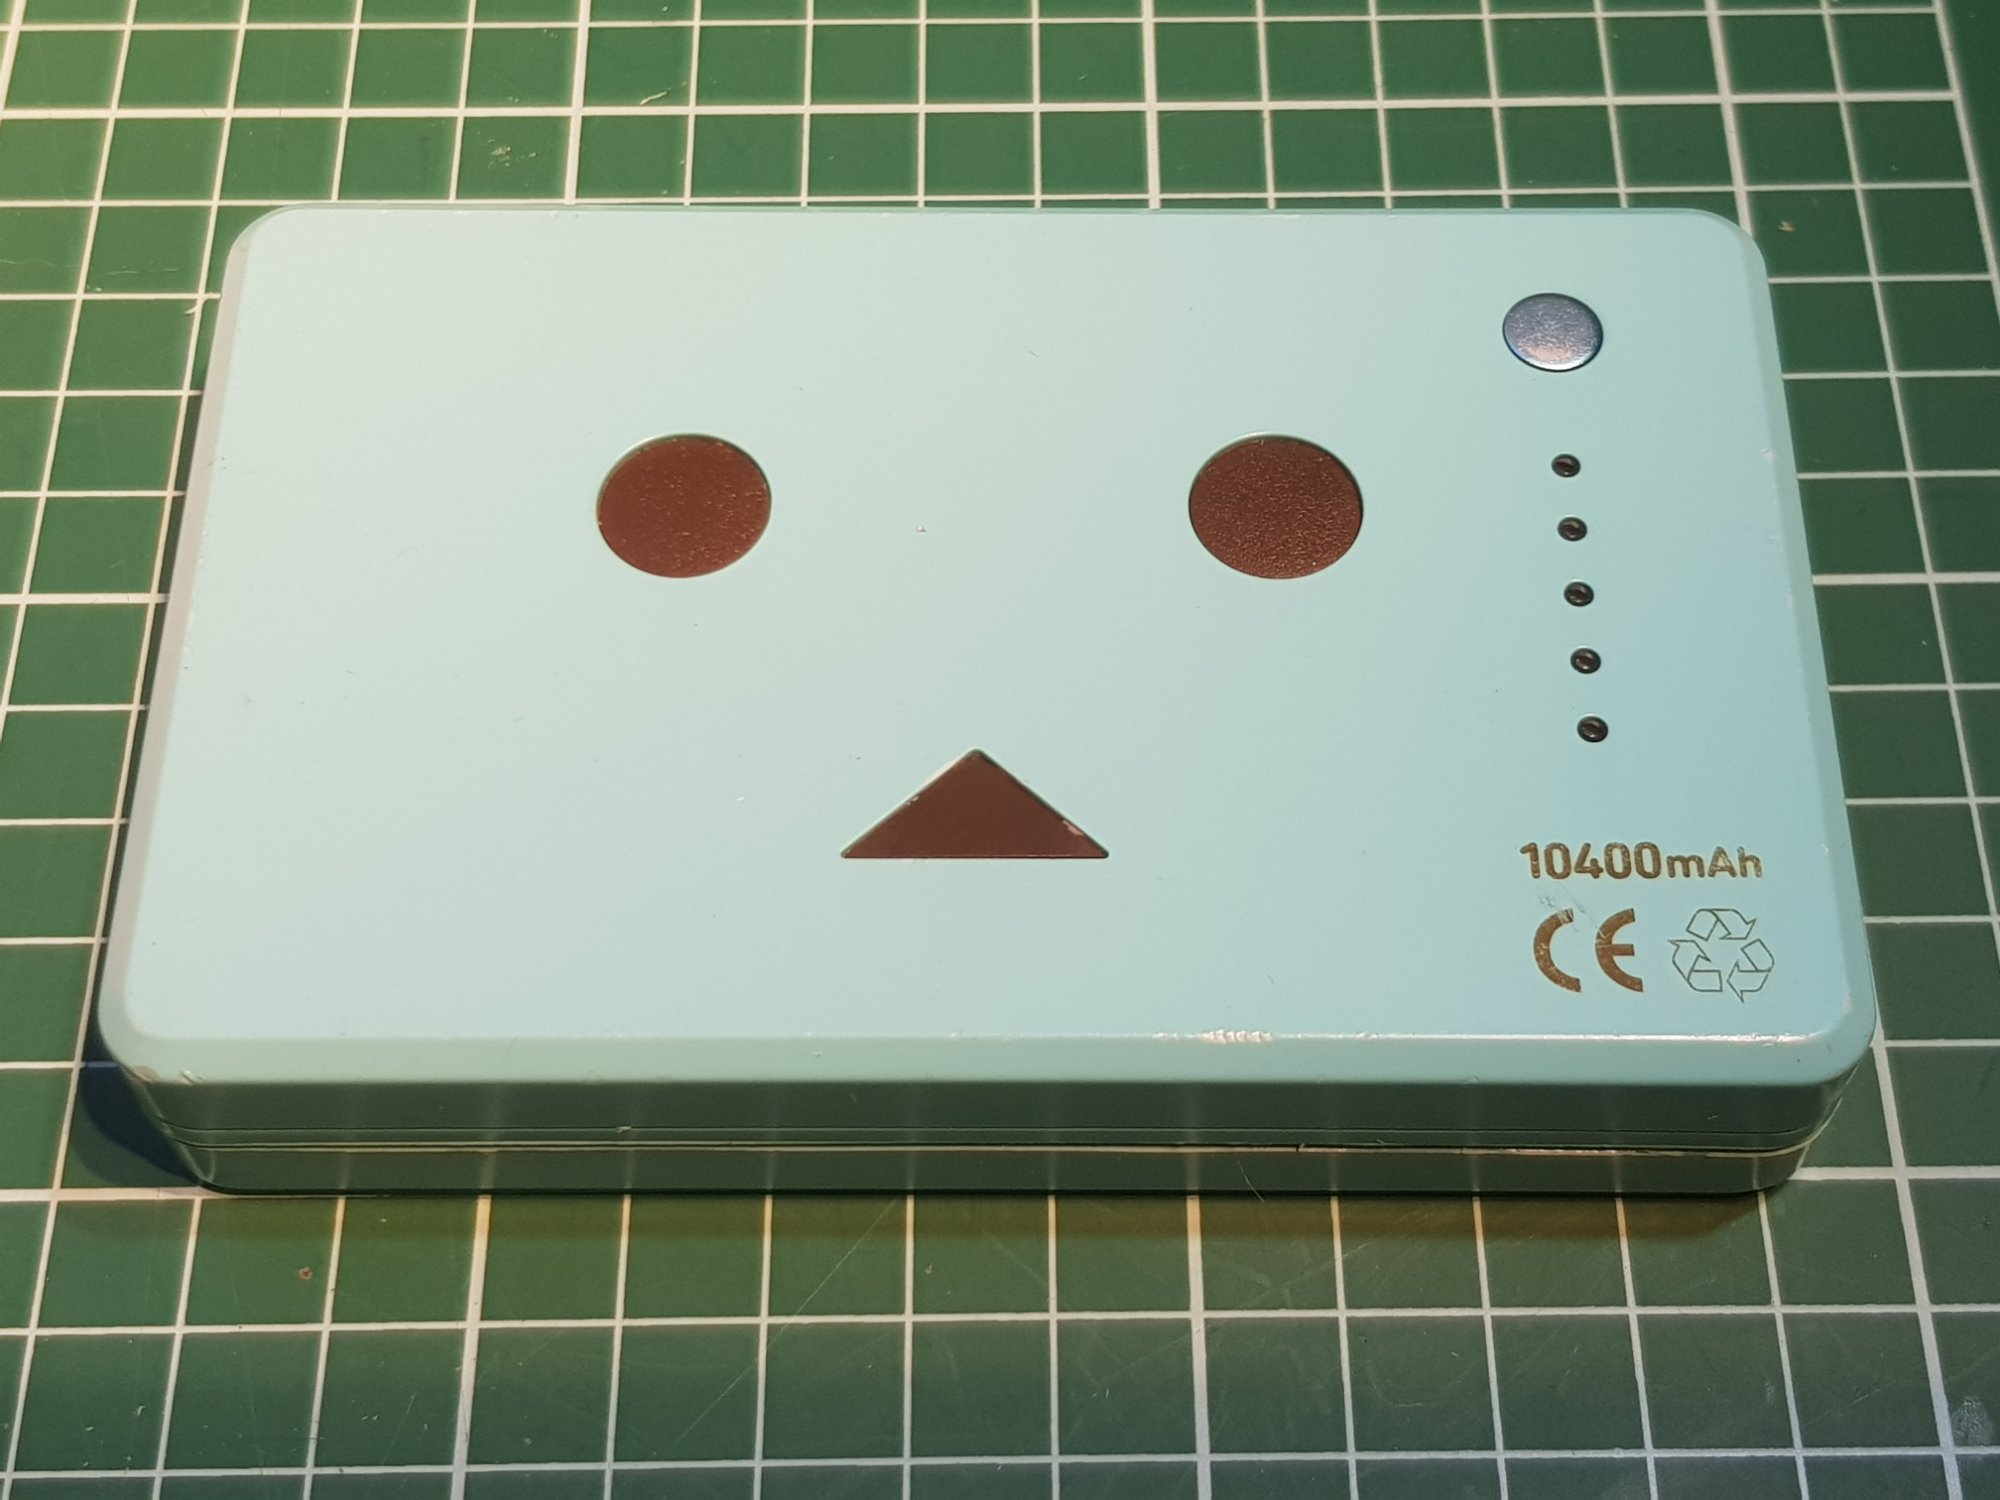 Cheero Danboard 10400mah powerbank and list of best powerbanks